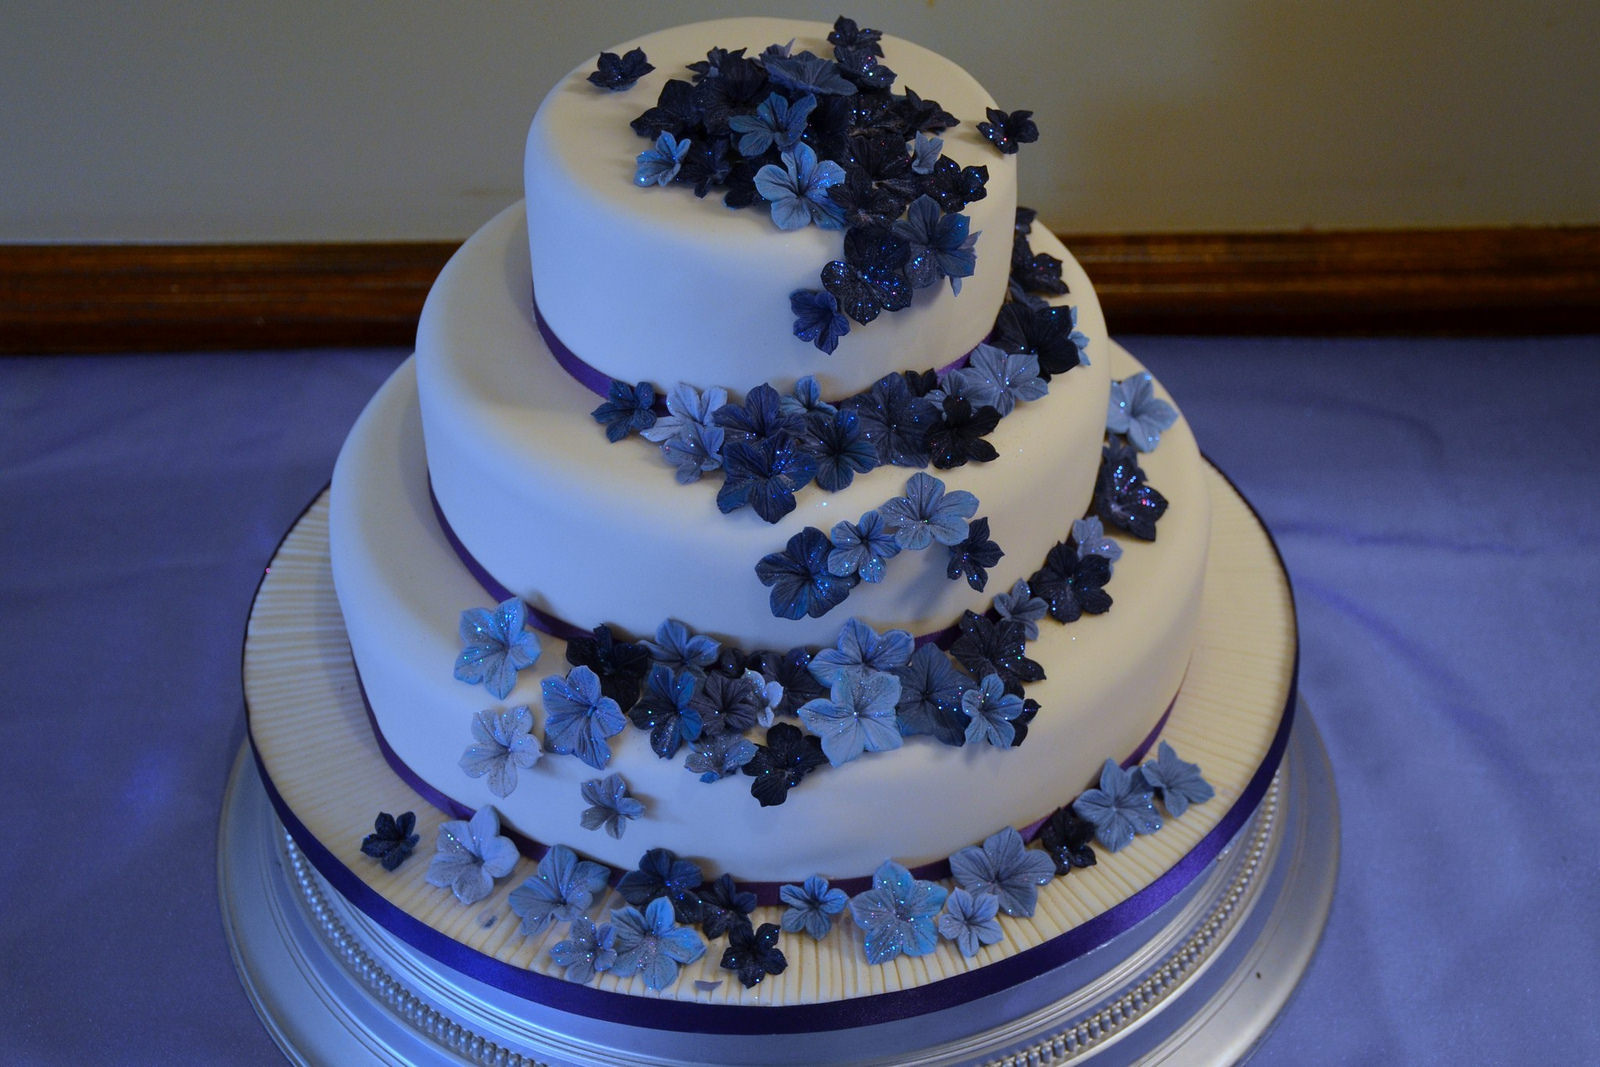 Image: A beautiful 3 tier cake with blue sugar flowers